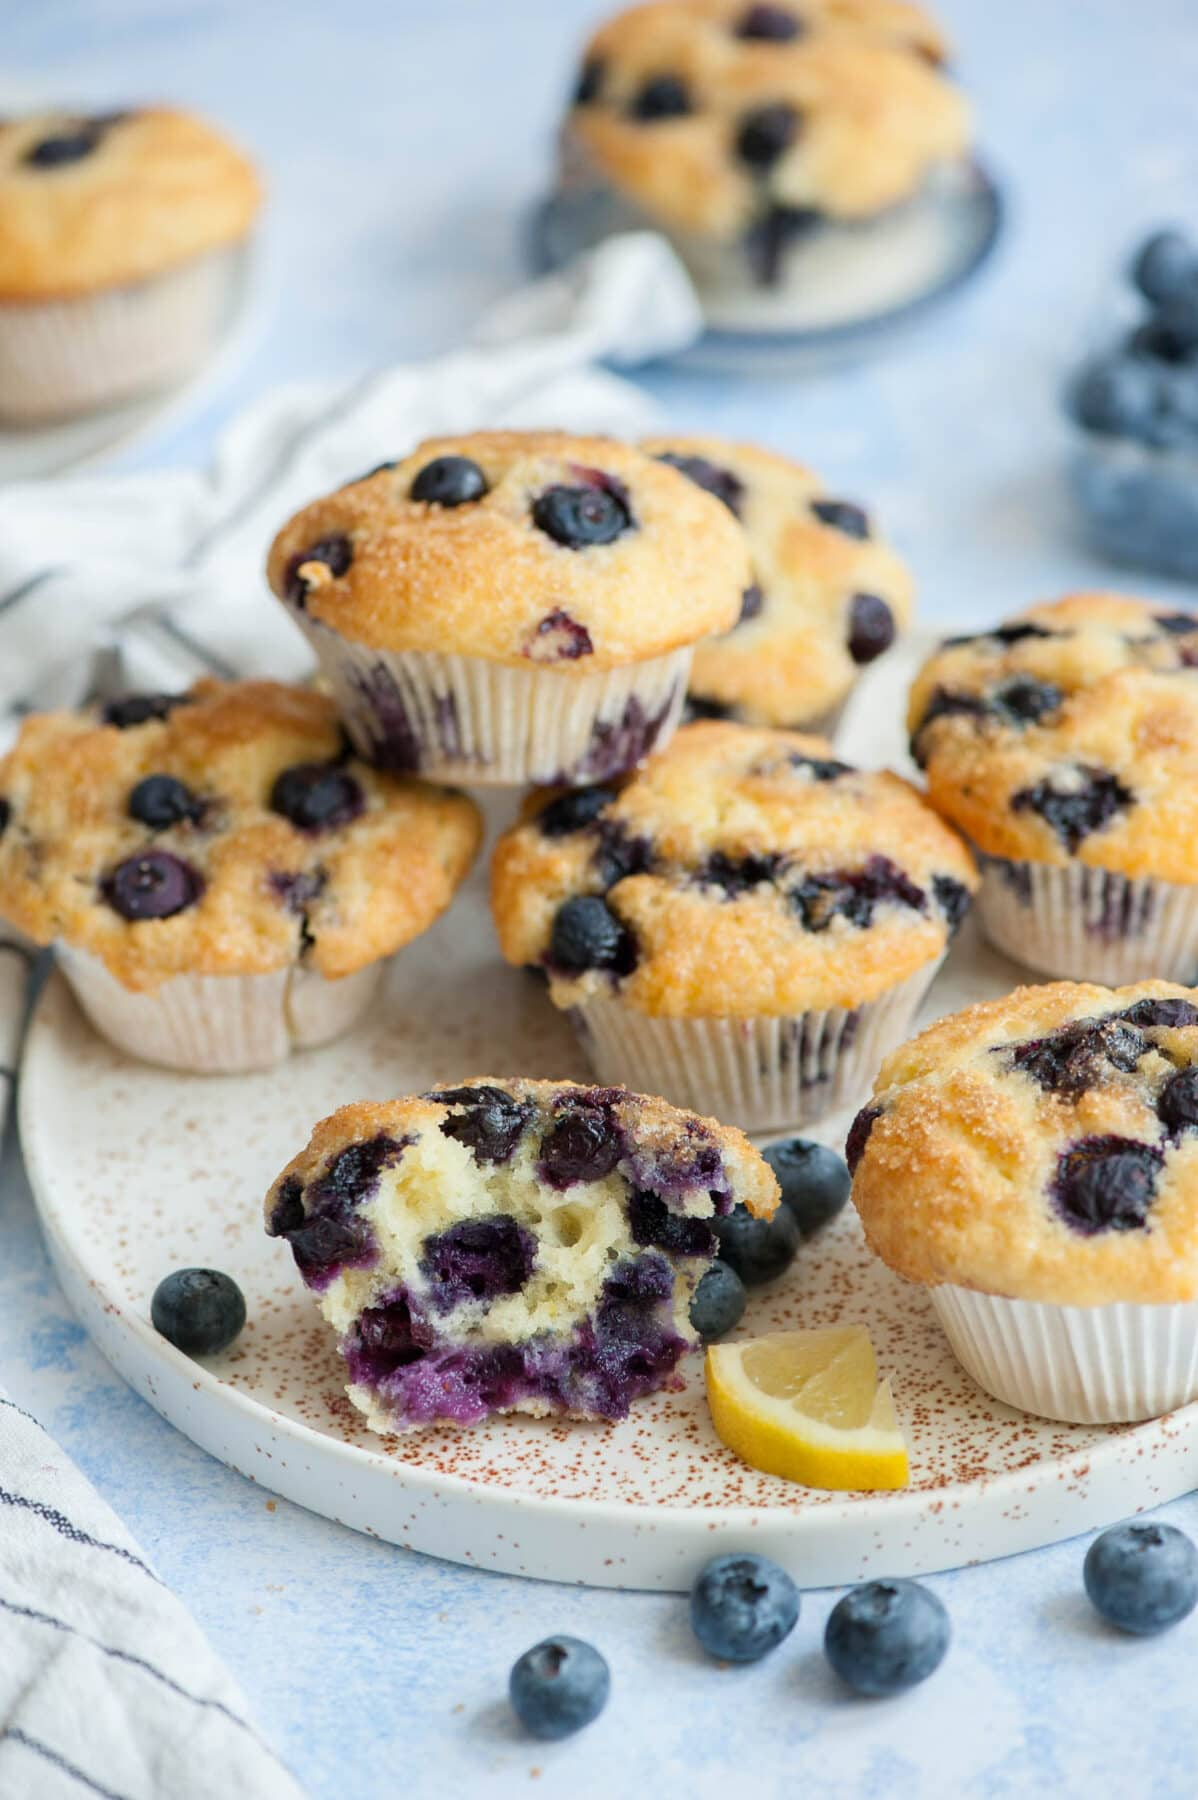 Blueberry yogurt muffins on a white plate with one muffin cut in half.